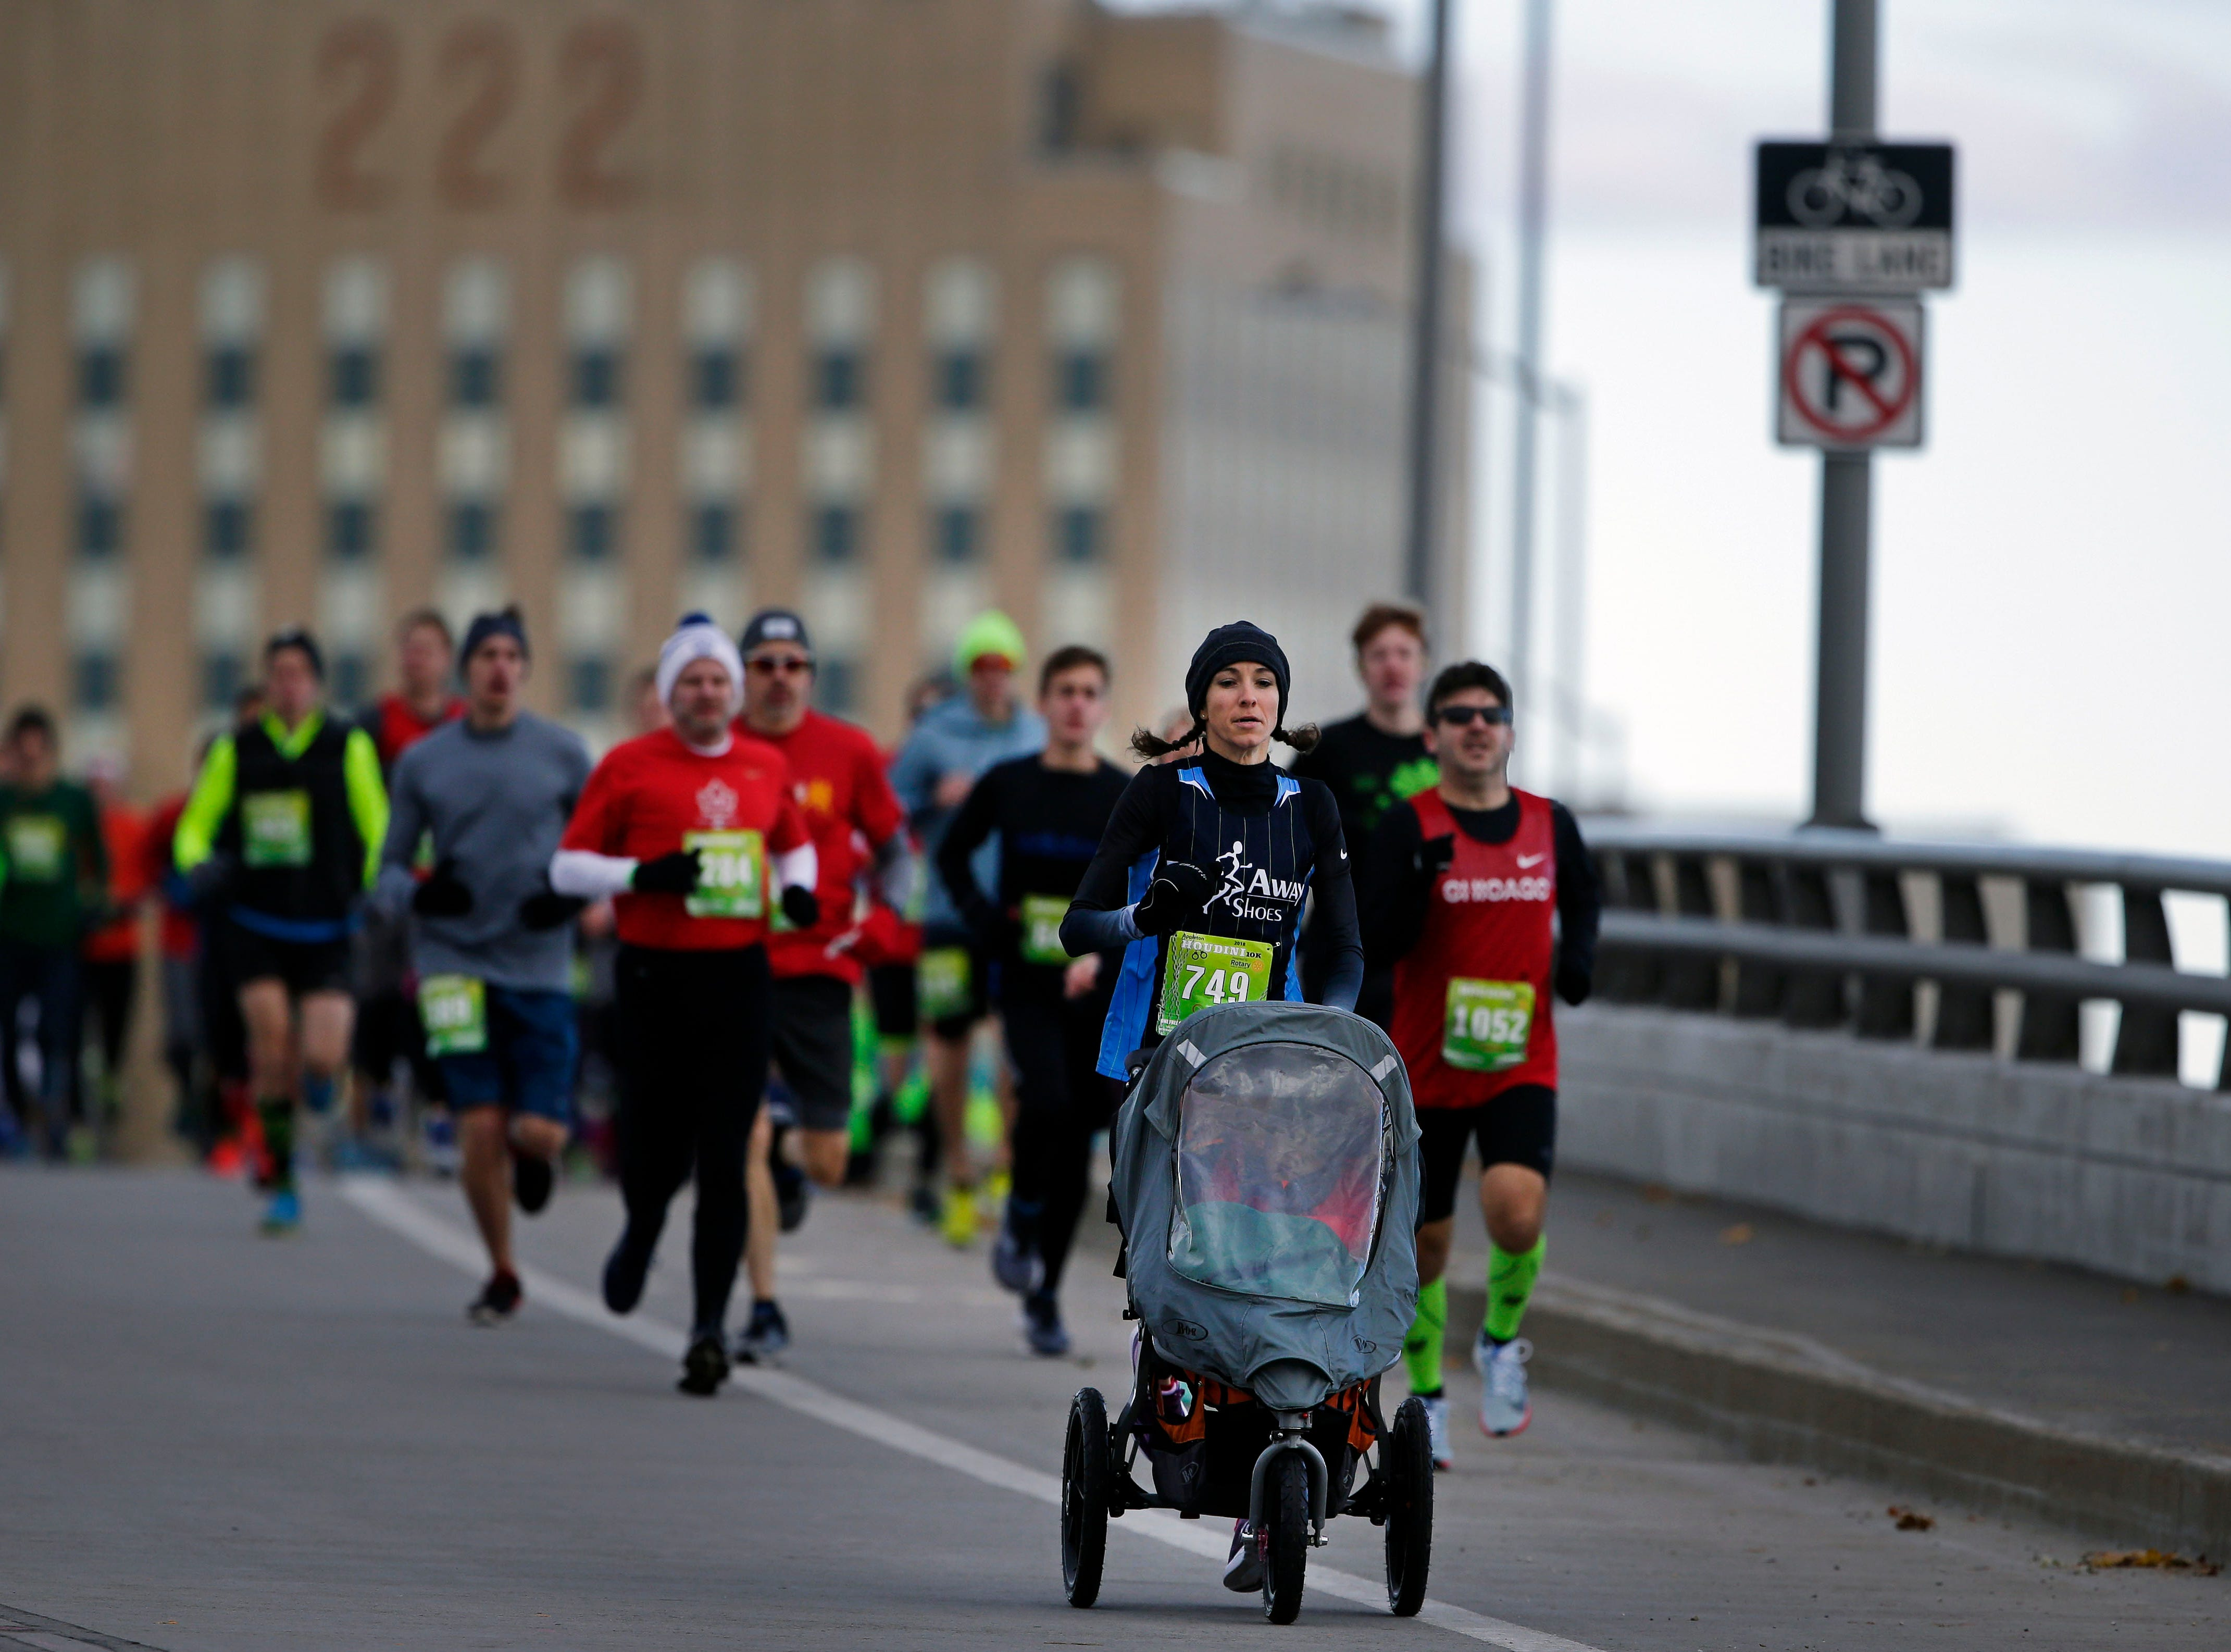 Laura Schmitz tackles the run with an addition as runners cross the Oneida Street bridge during the 4th annual Appleton Houdini 10K Saturday, November 3, 2018, in Appleton, Wis.